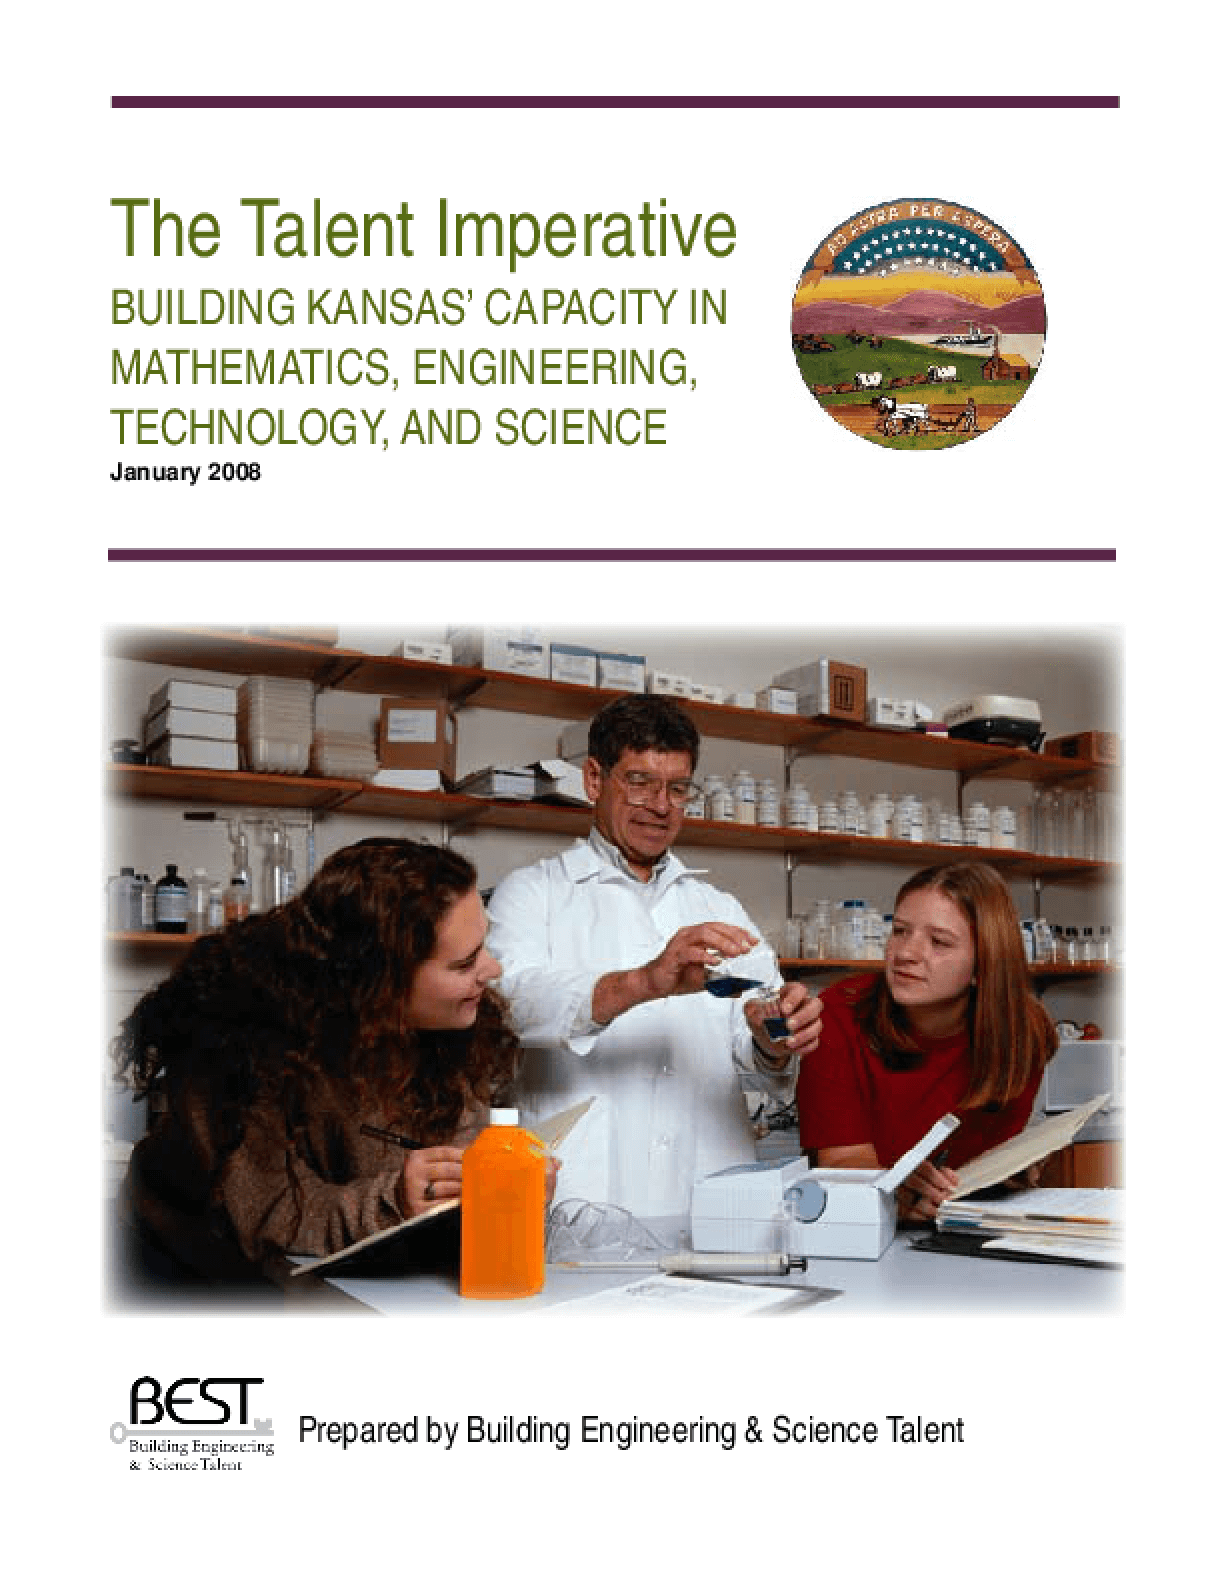 The Talent Imperative: Building Kansas' Capacity in Mathematics, Engineering, Technology, and Science